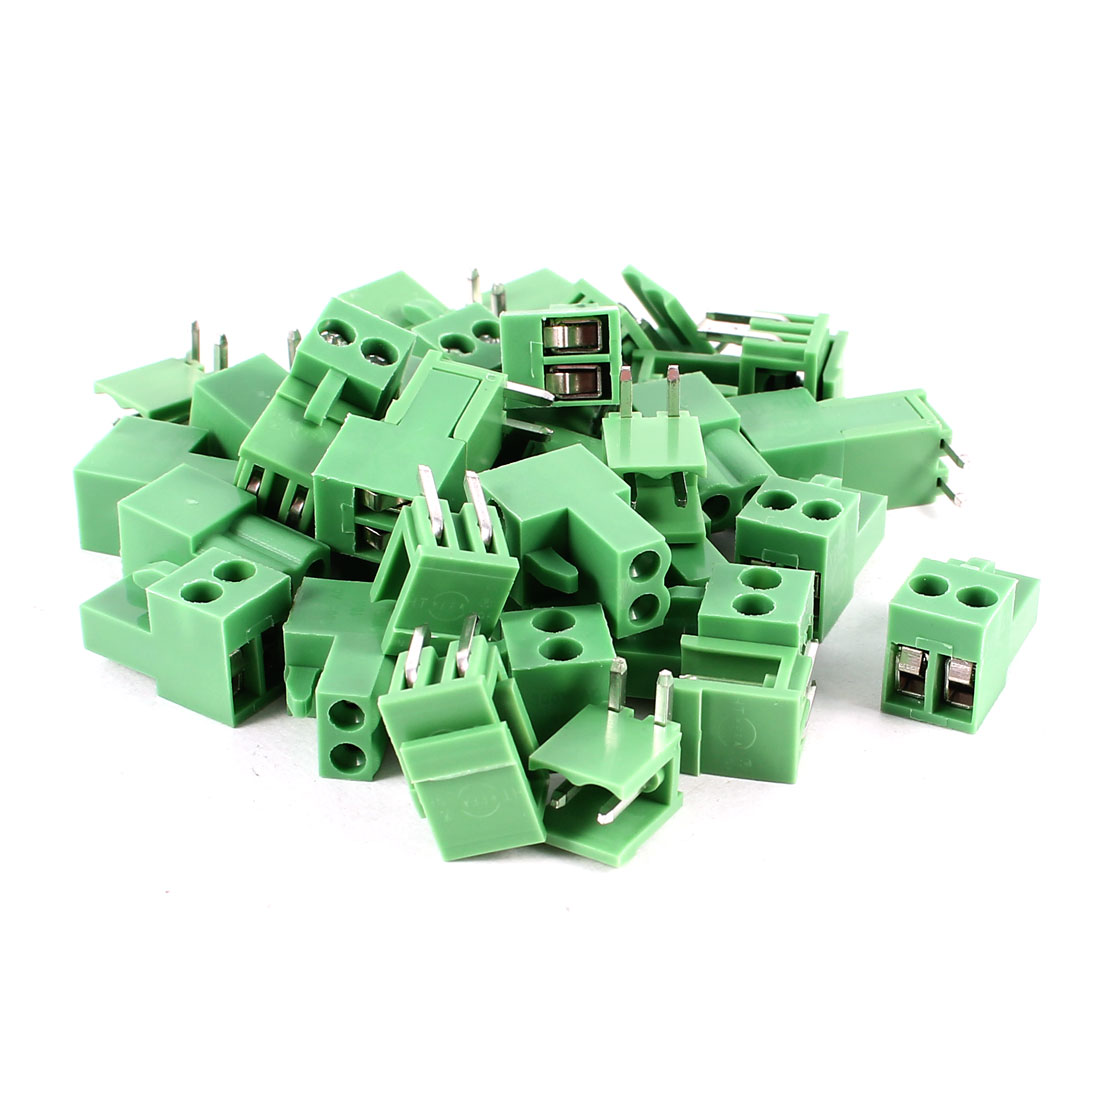 20 Pcs 2Pin 3.96mm Spacing PCB Screw Terminal Block Connector 300V 10A AWG14-26